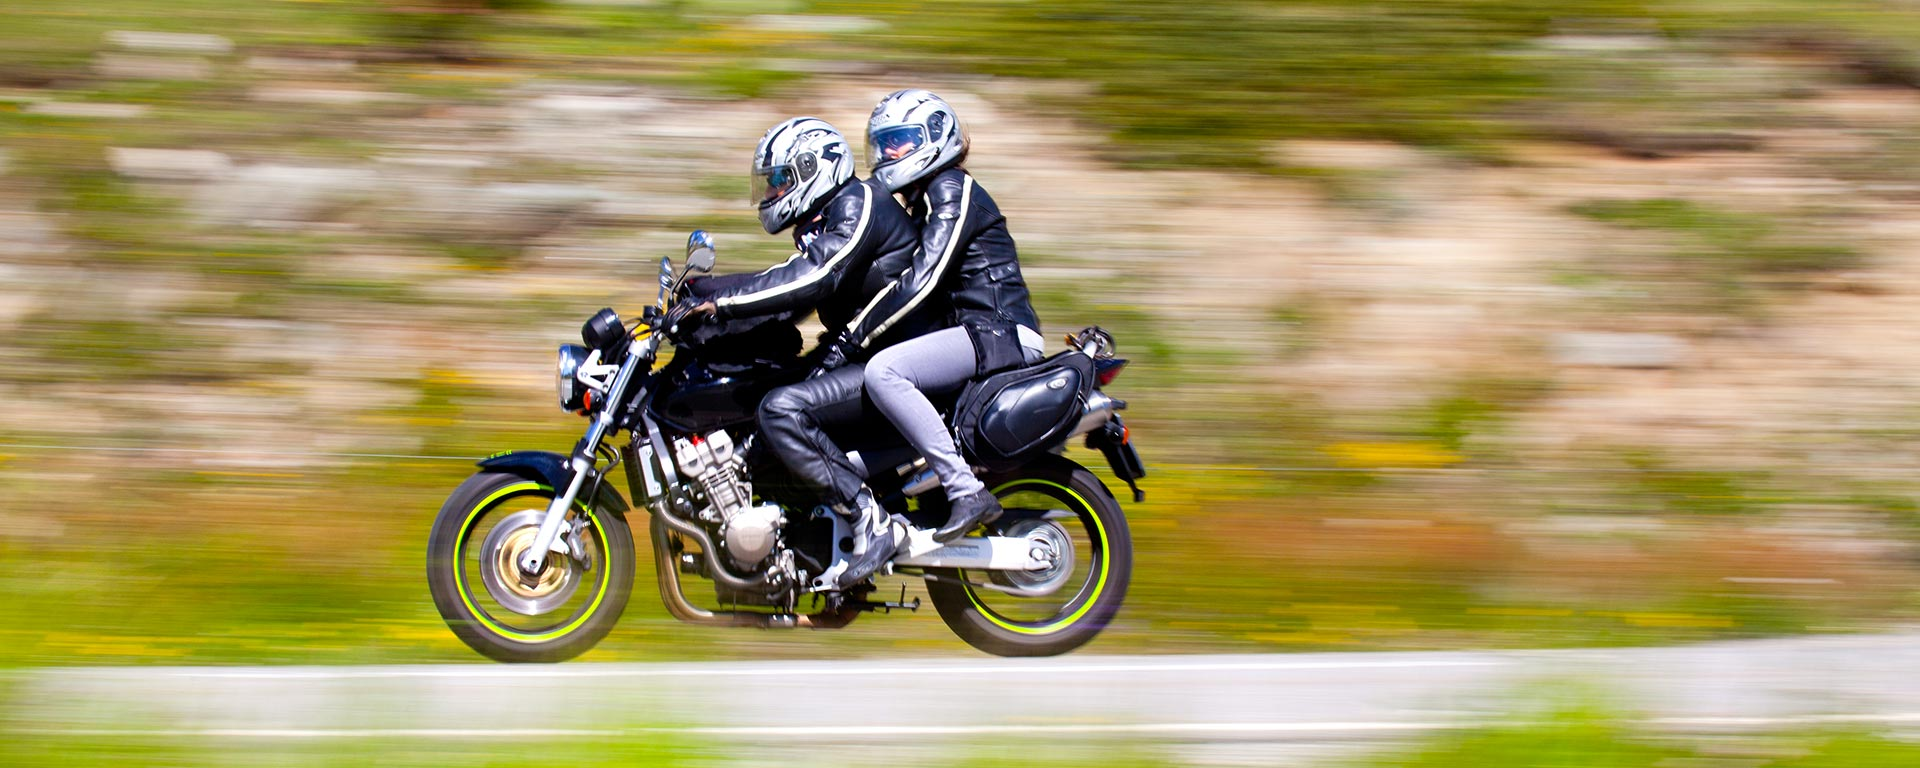 a couple riding a black motorbike at high speed